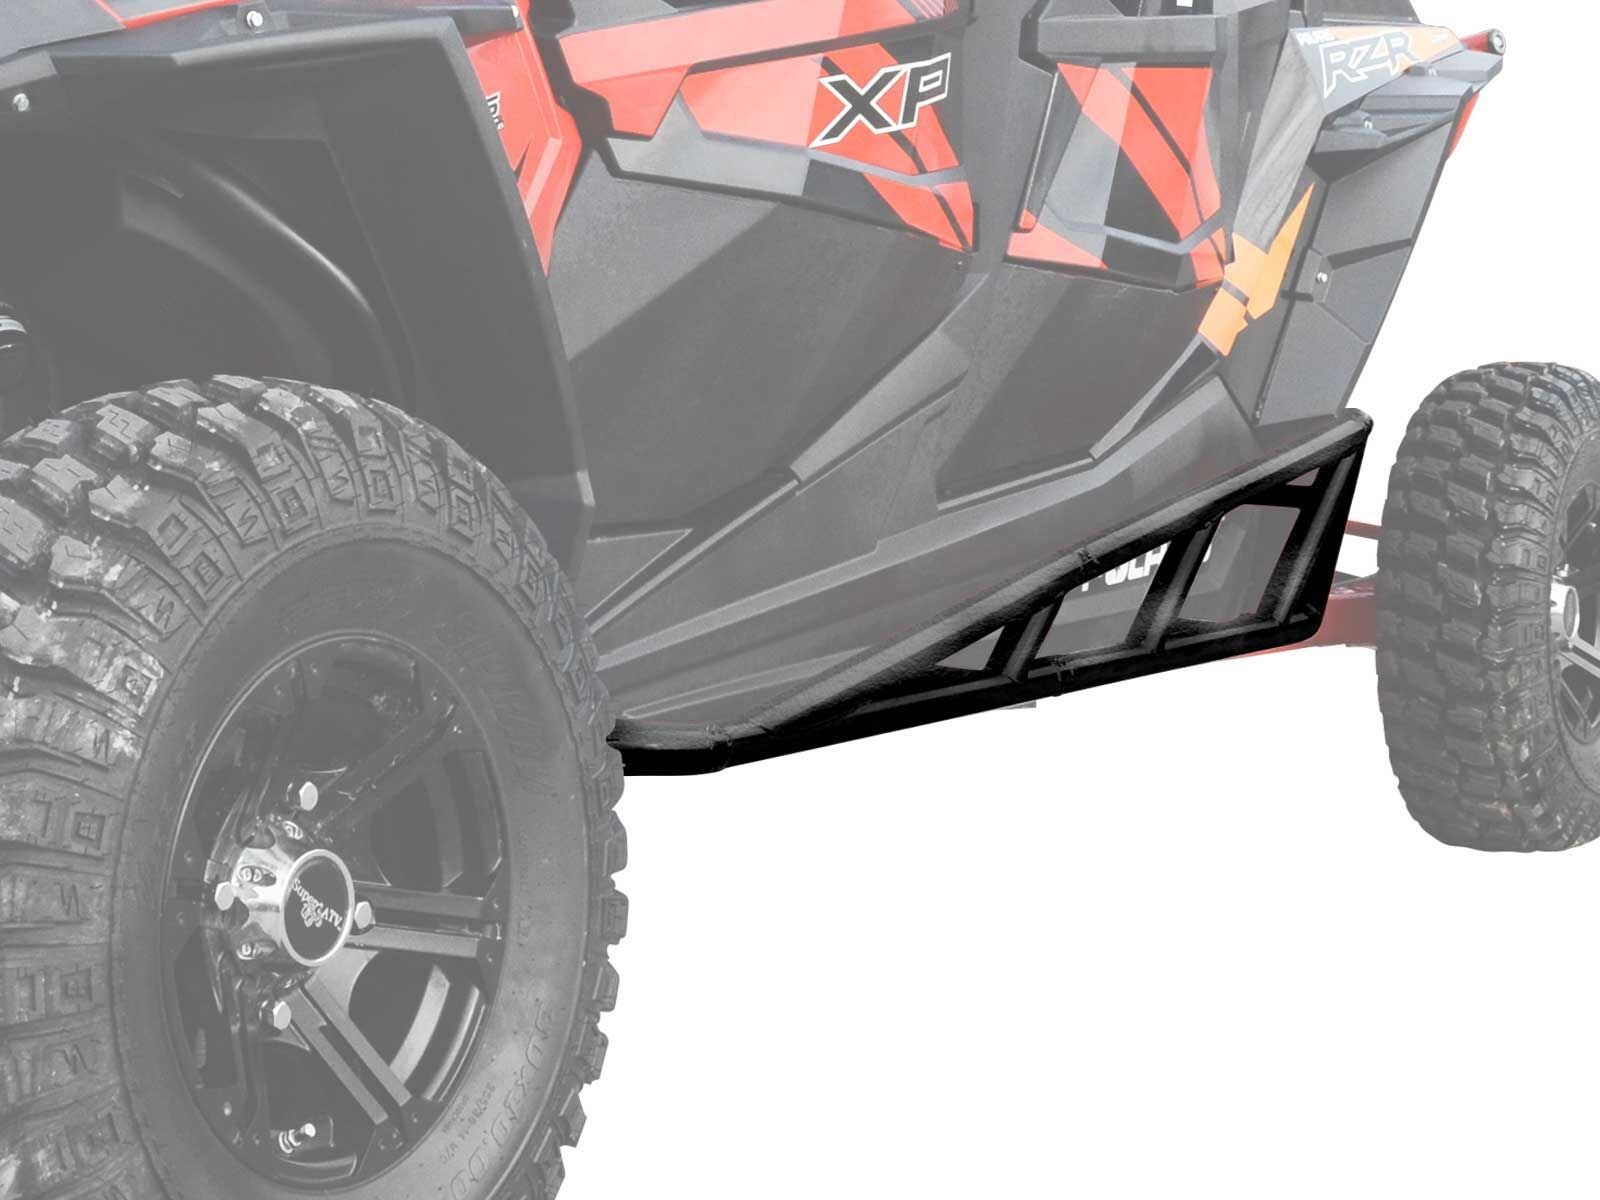 SuperATV Nerf Bars/Tree Kickers/Rock Sliders for Polaris RZR XP 4 1000 (2014+) - Black - Compatible With Our Full Protection Kit!